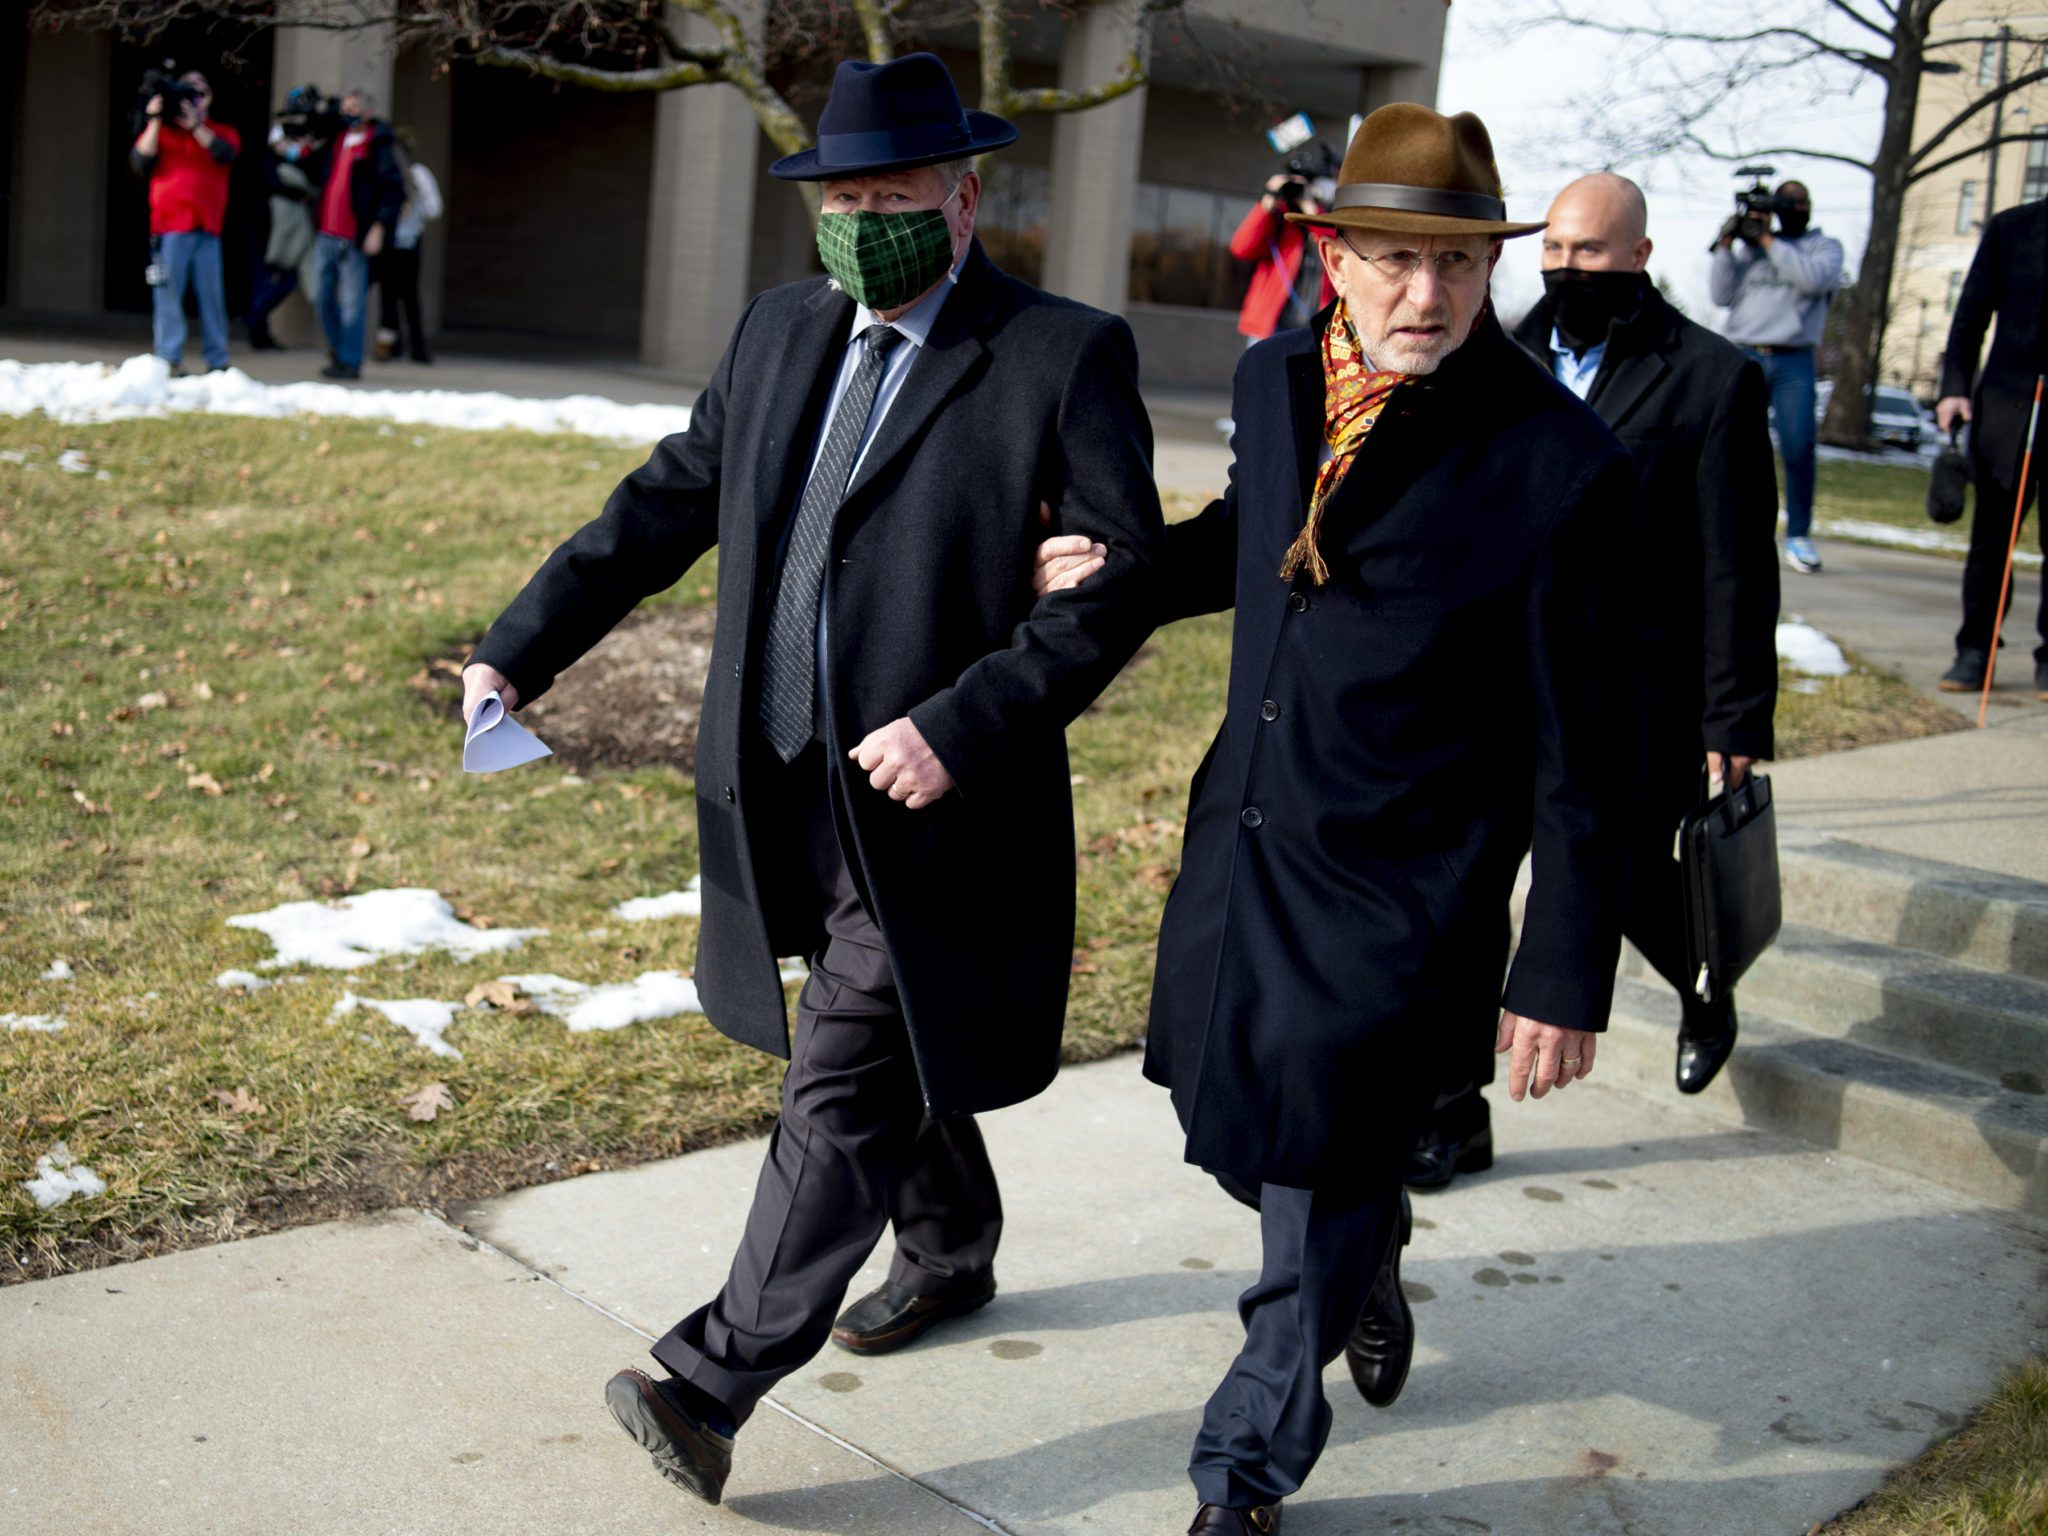 Attorney Randall Levine, right, walks arm-in-arm with Richard Baird, former transformation manager and senior adviser to former Michigan Gov. Rick Snyder, after a video arraignment on charges related to the Flint water crisis, Thursday, Jan. 14, 2021 at the Genesee County Jail in downtown Flint, Mich. Baird faces four felony counts, including perjury, official misconduct in office, obstruction of justice and extortion. (Jake May/The Flint Journal via AP)